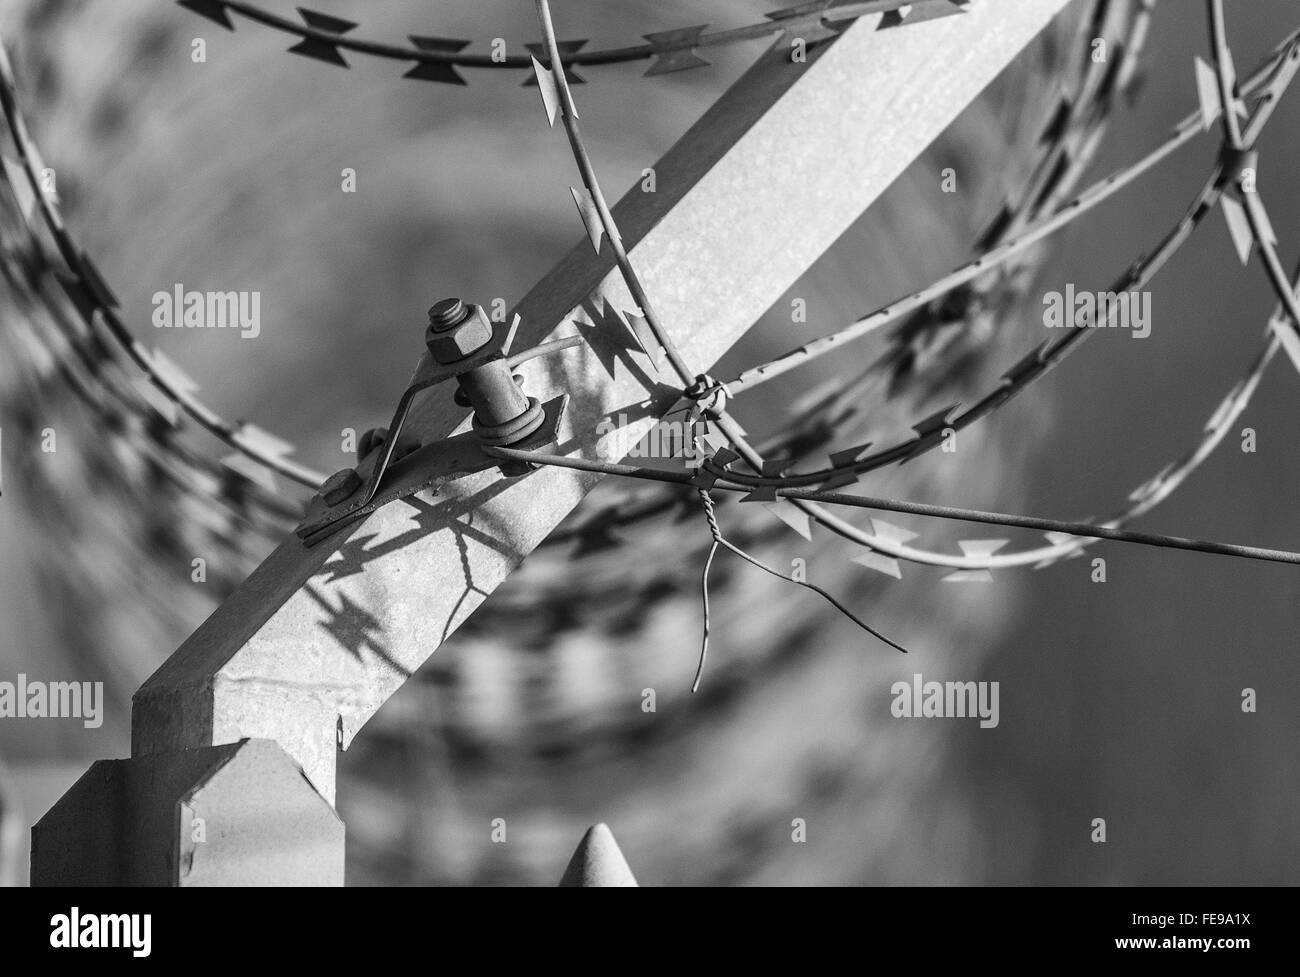 Security fence with razor wire - Stock Image